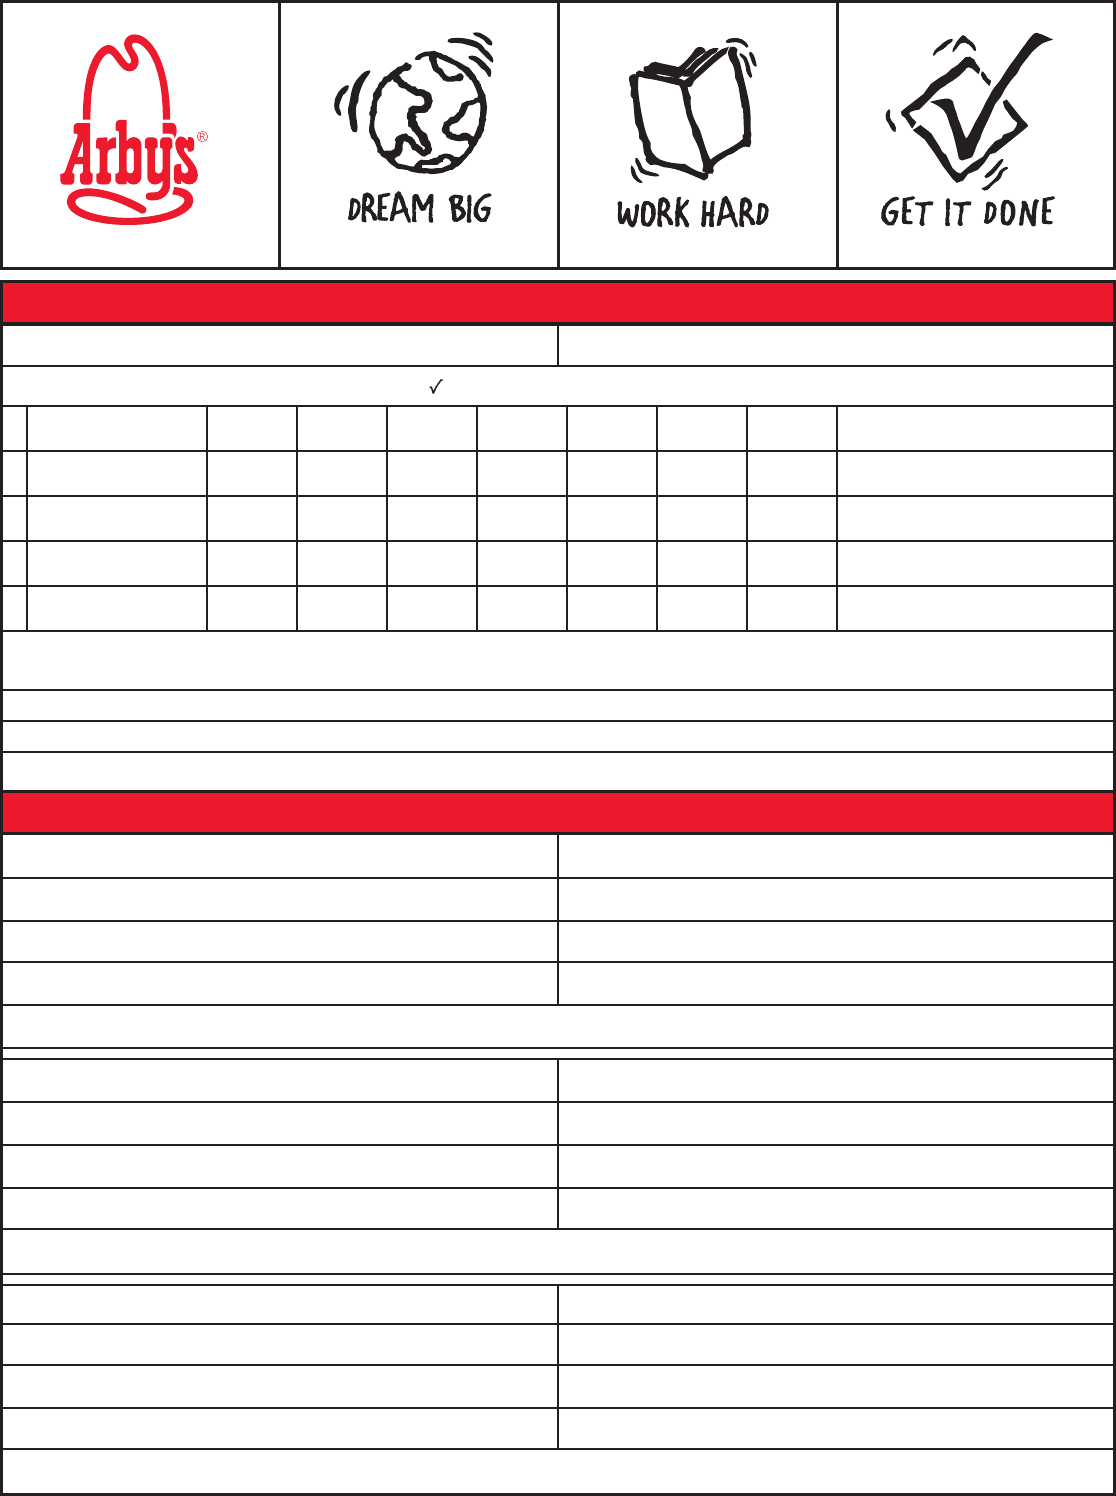 Free Printable Arby\'s Job Application Form Page 2